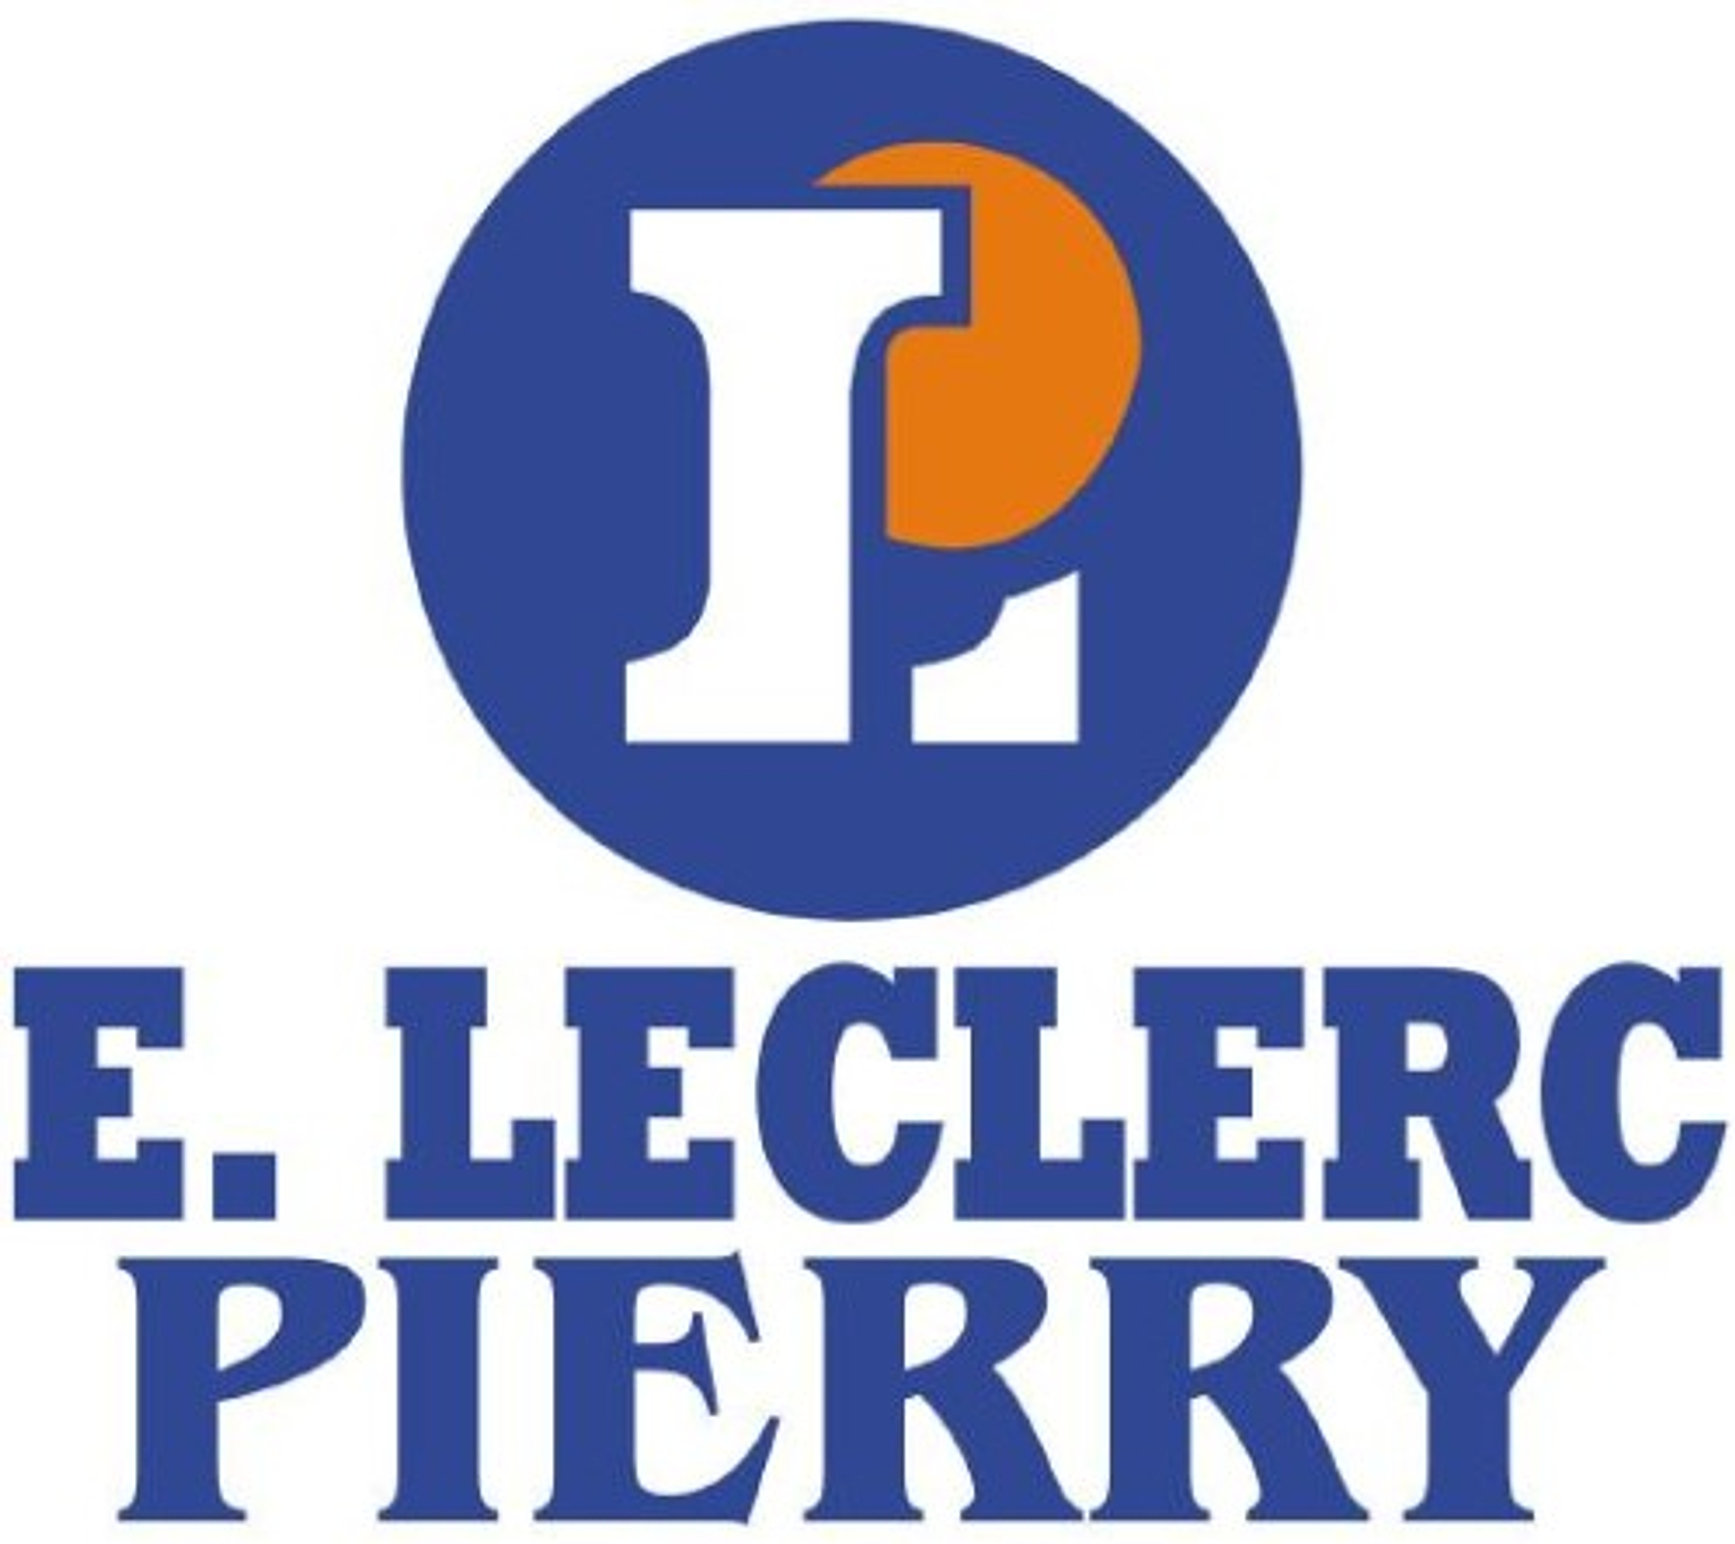 Effectif cfa2 rc epernay for Catalogue leclerc pierry